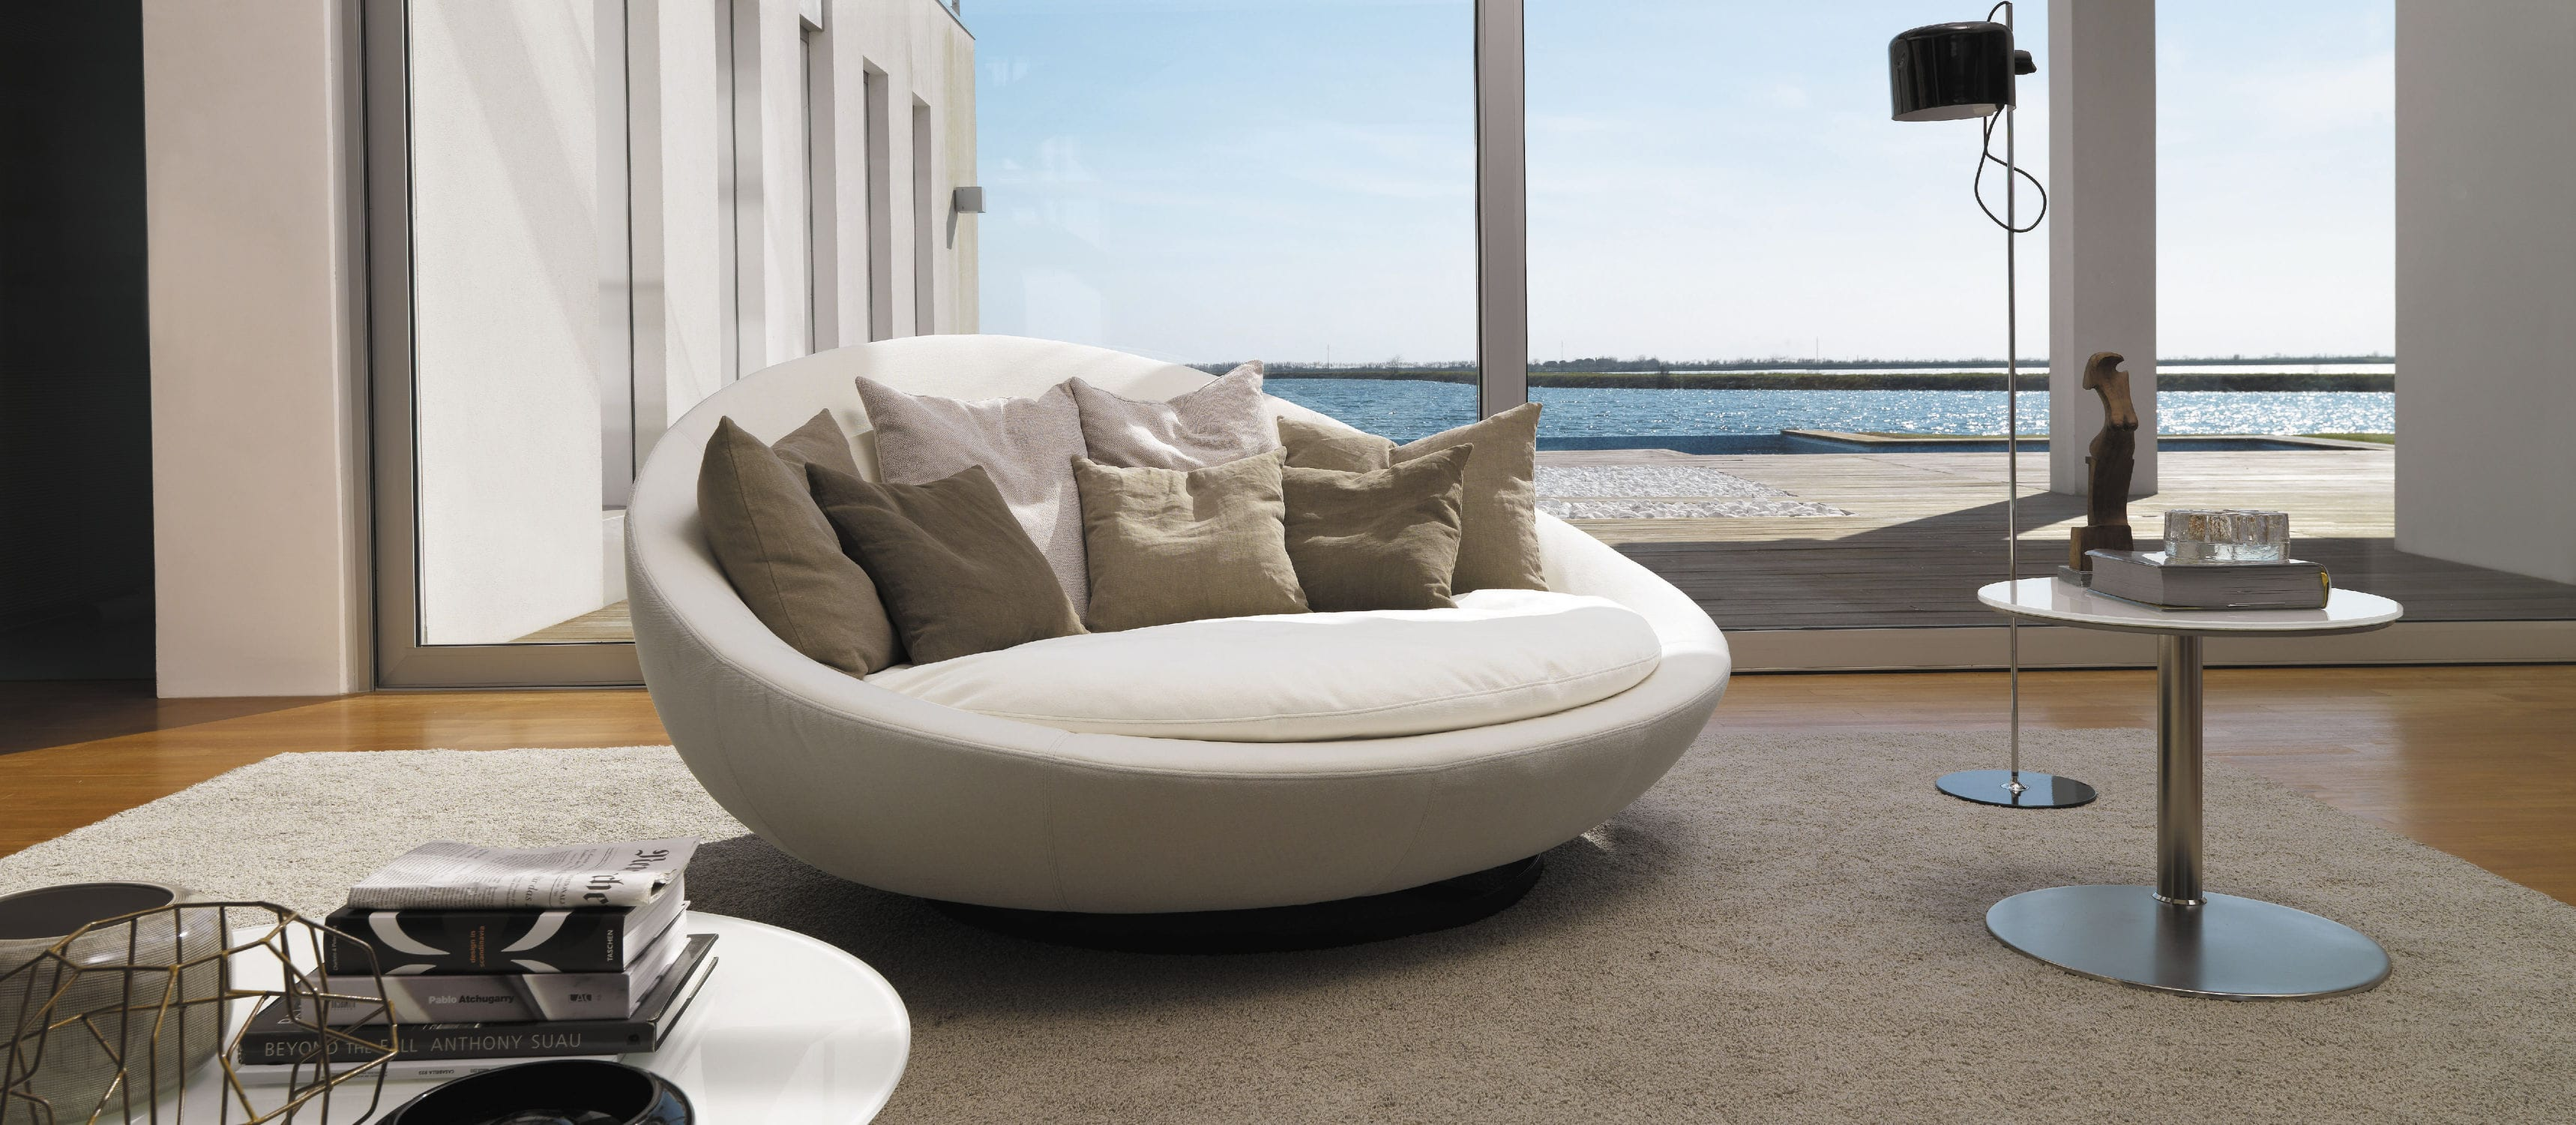 Round sofa round sofa / contemporary / leather / fabric ... UFAPGFF